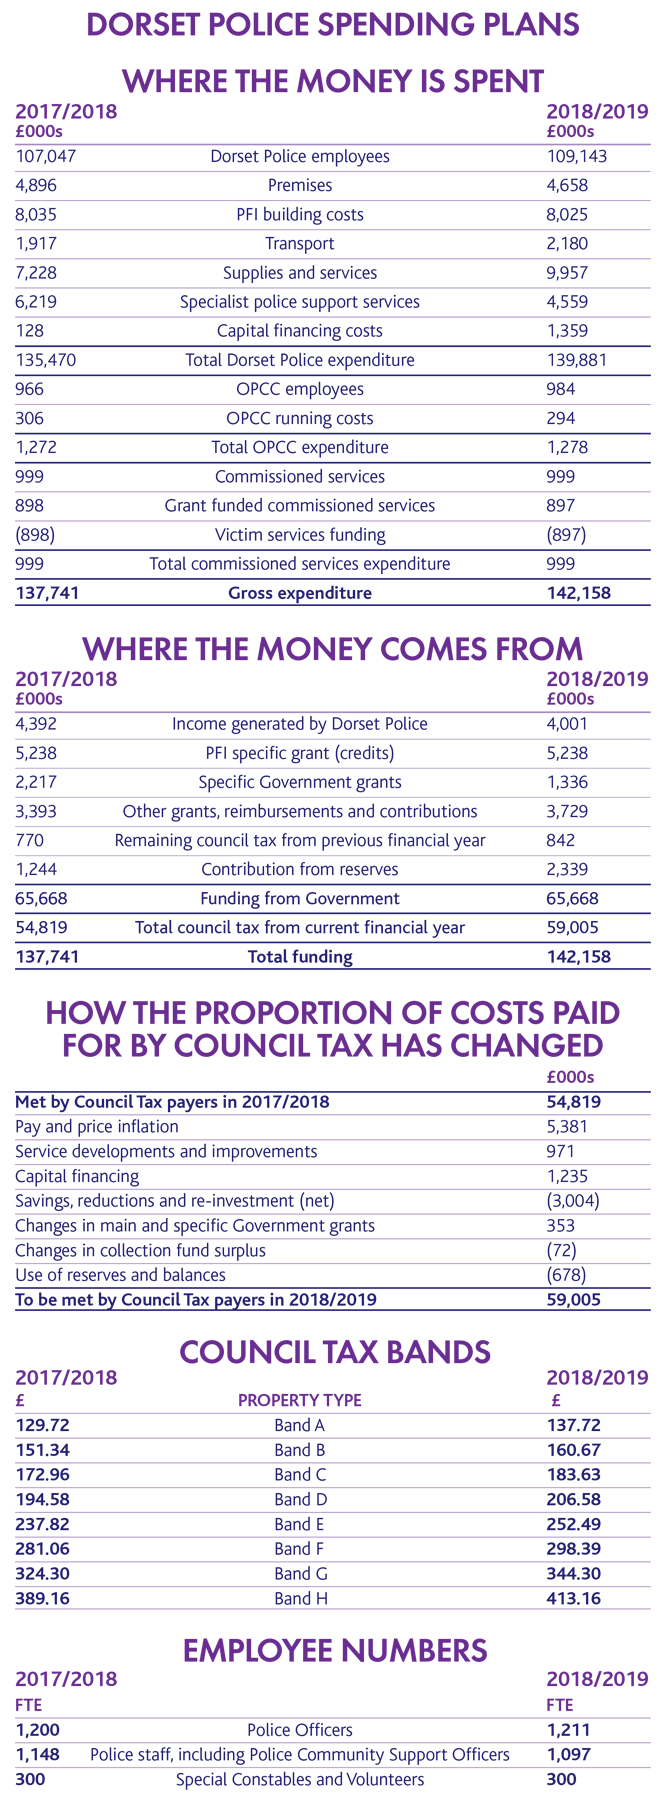 A table showing Dorset Police spending plans. It includes where the money is spent, where the money comes from, how the proportion of costs paid for by council tax has changed, council tax bands and employee numbers. Please contact the office if you would like the table in a more accessible format.